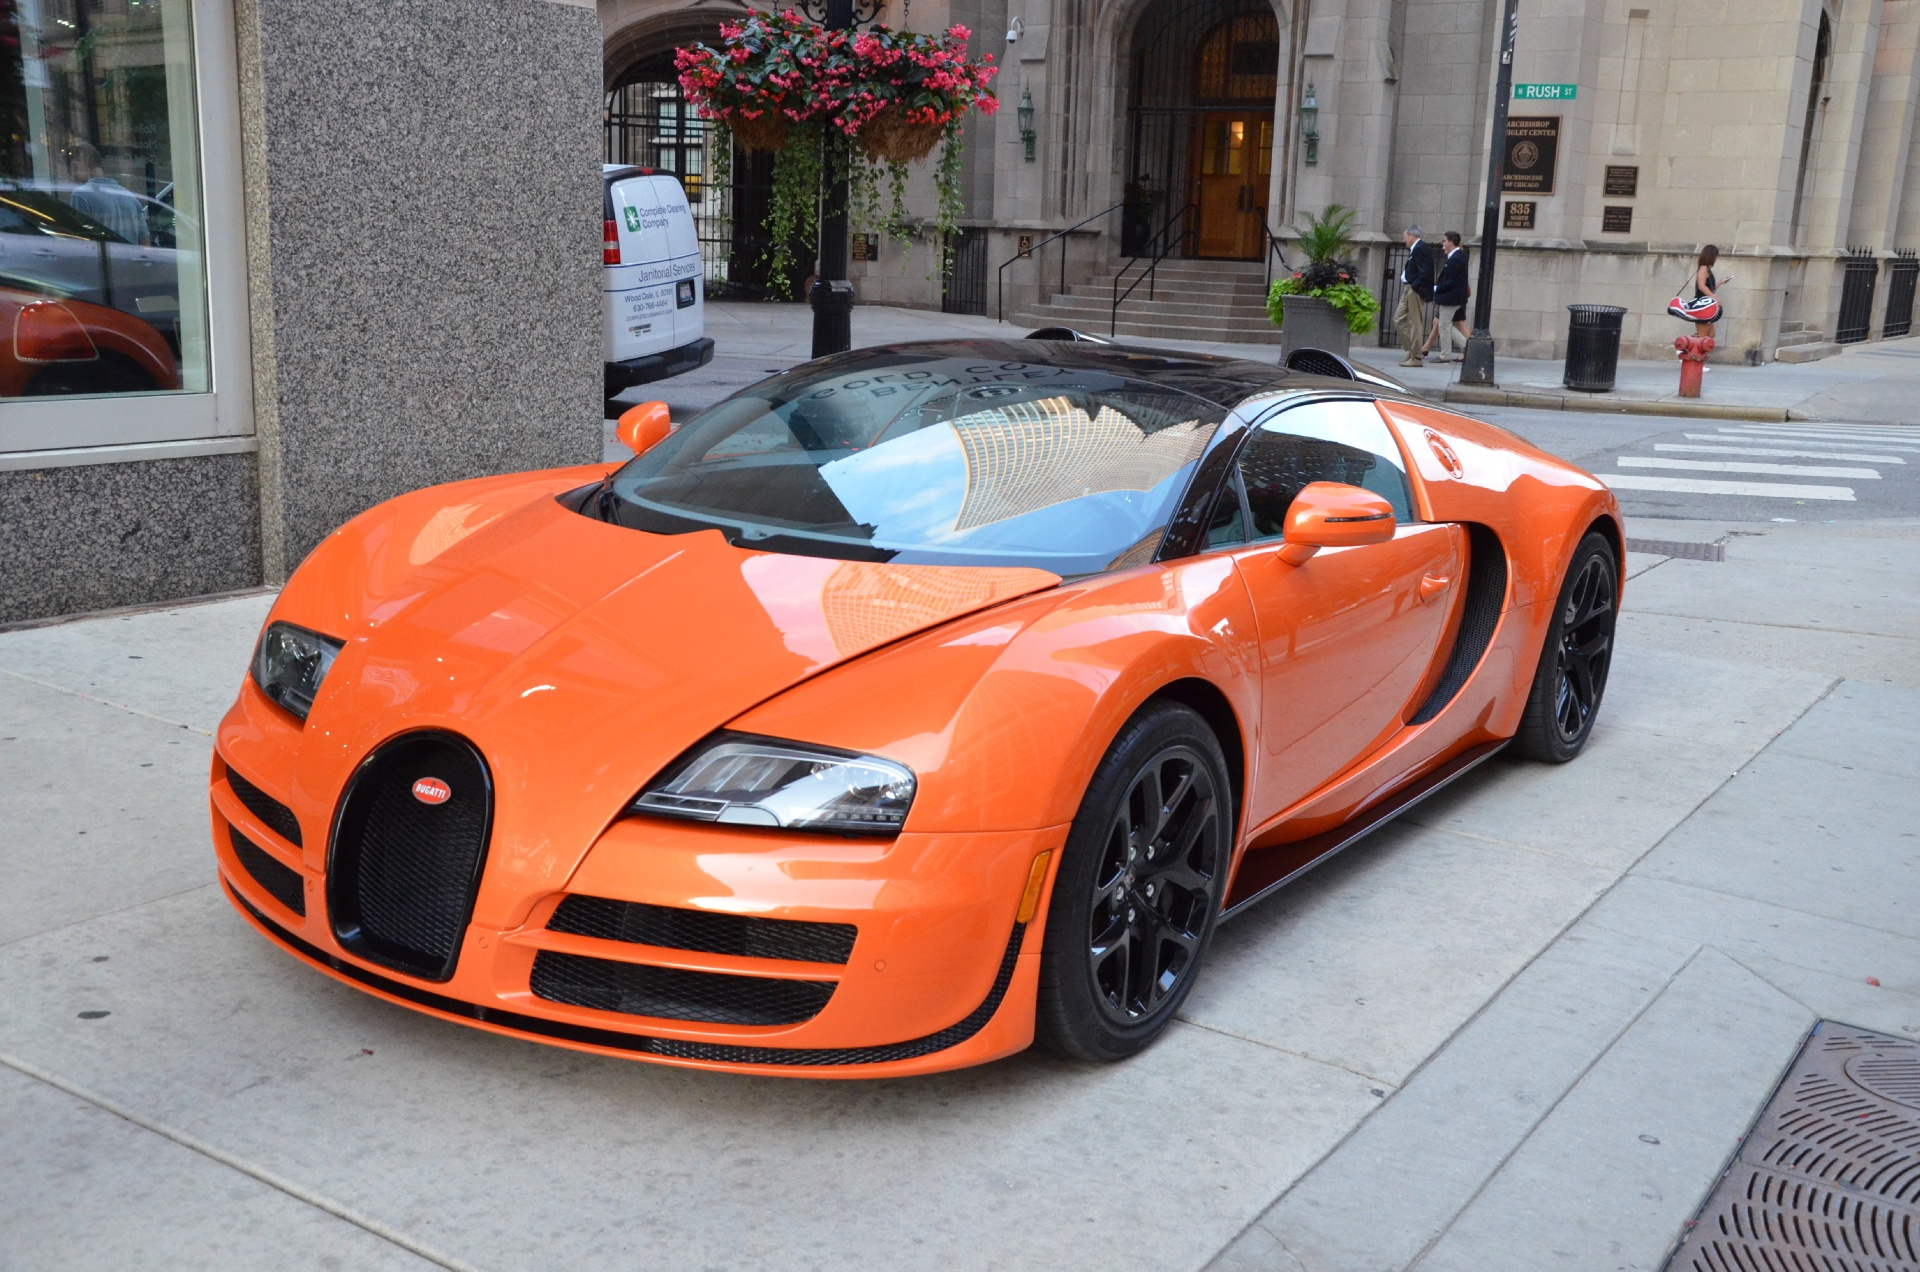 4034_p16_l Modern Bugatti Veyron Price and Pictures Cars Trend